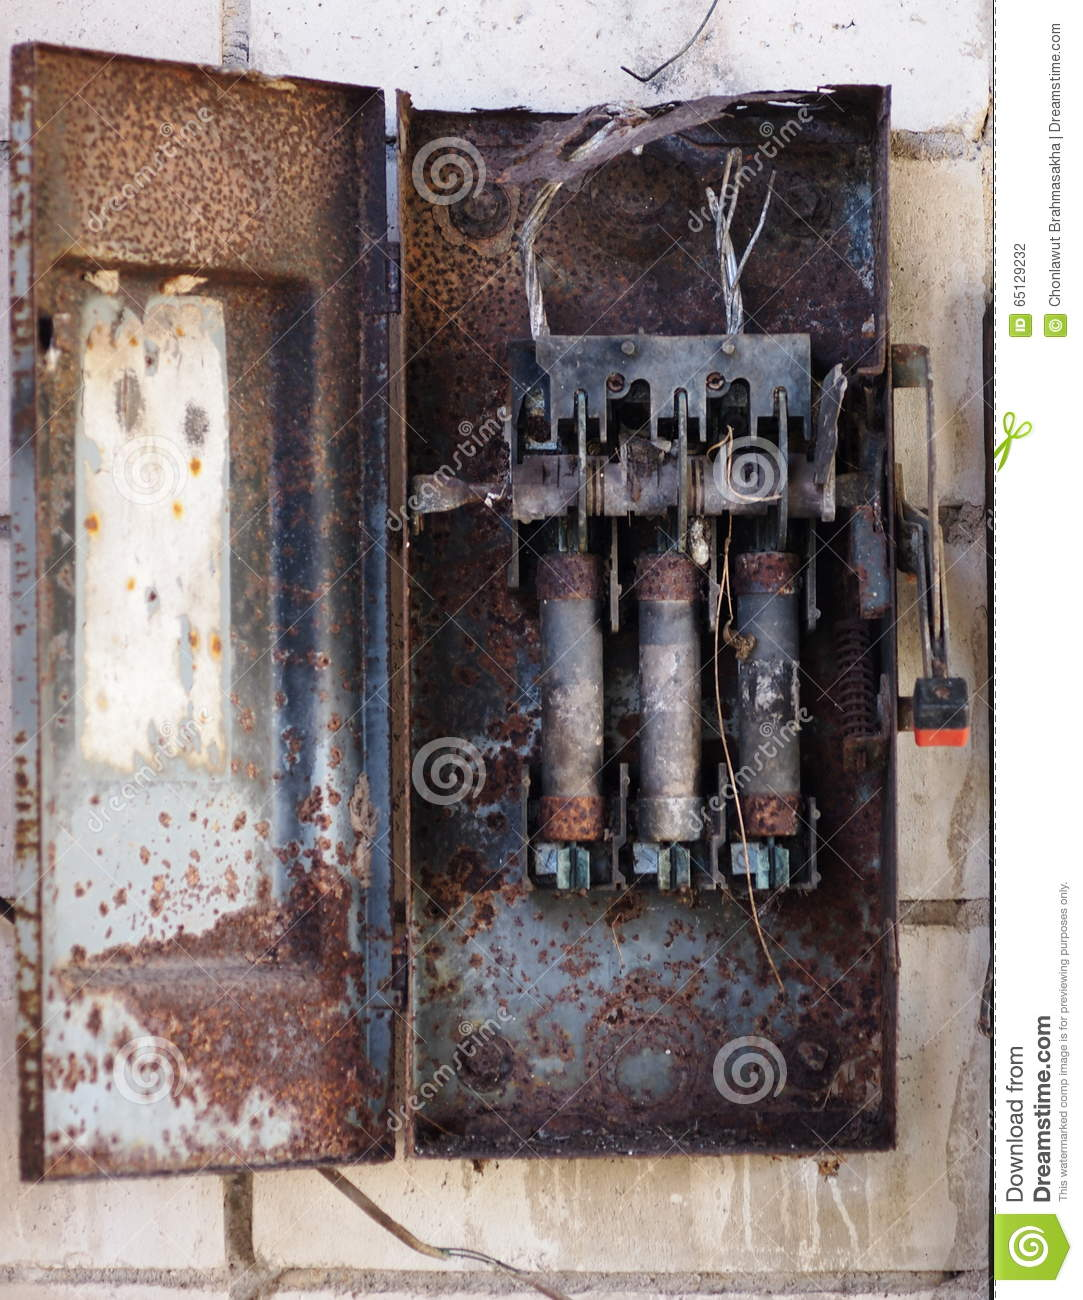 Types Of Industrial Fuses Fuse Box